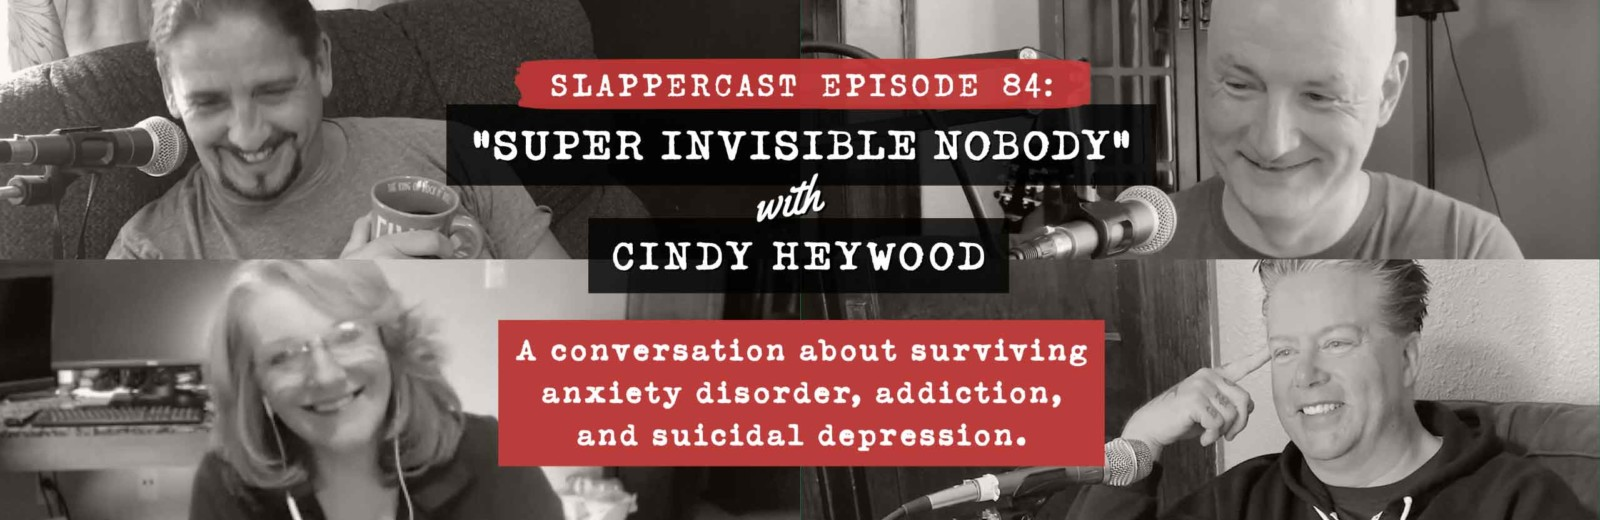 "SlapperCast 84: ""Super Invisible Nobody"" with Cindy Heywood. A conversation about surviving anxiety disorder, addiction, and suicidal depression."